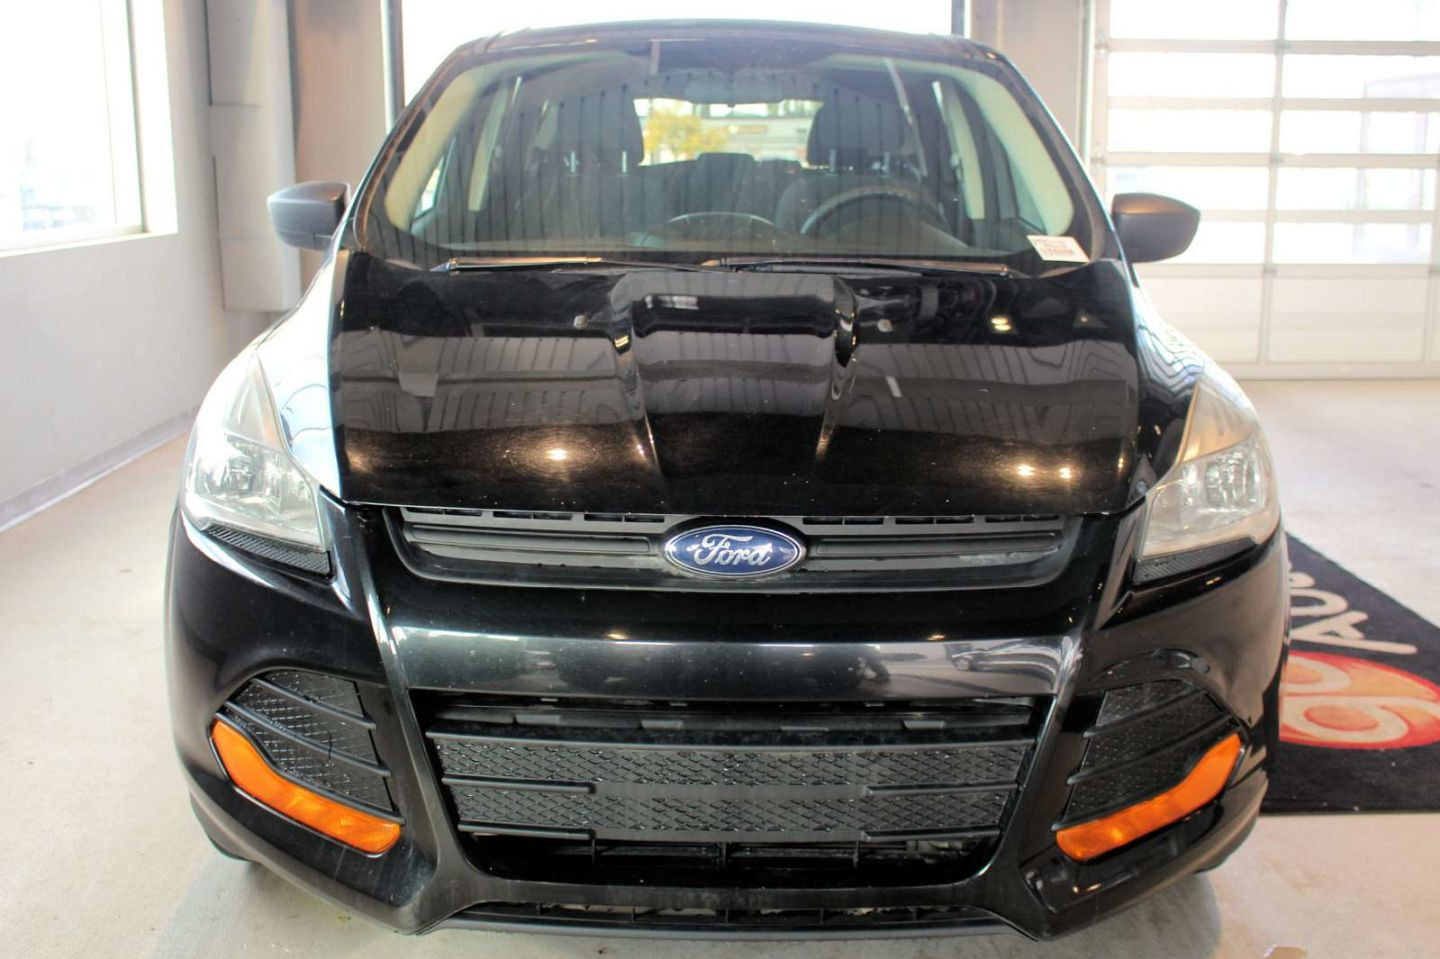 2014 Ford Escape S for sale in Spruce Grove, Alberta